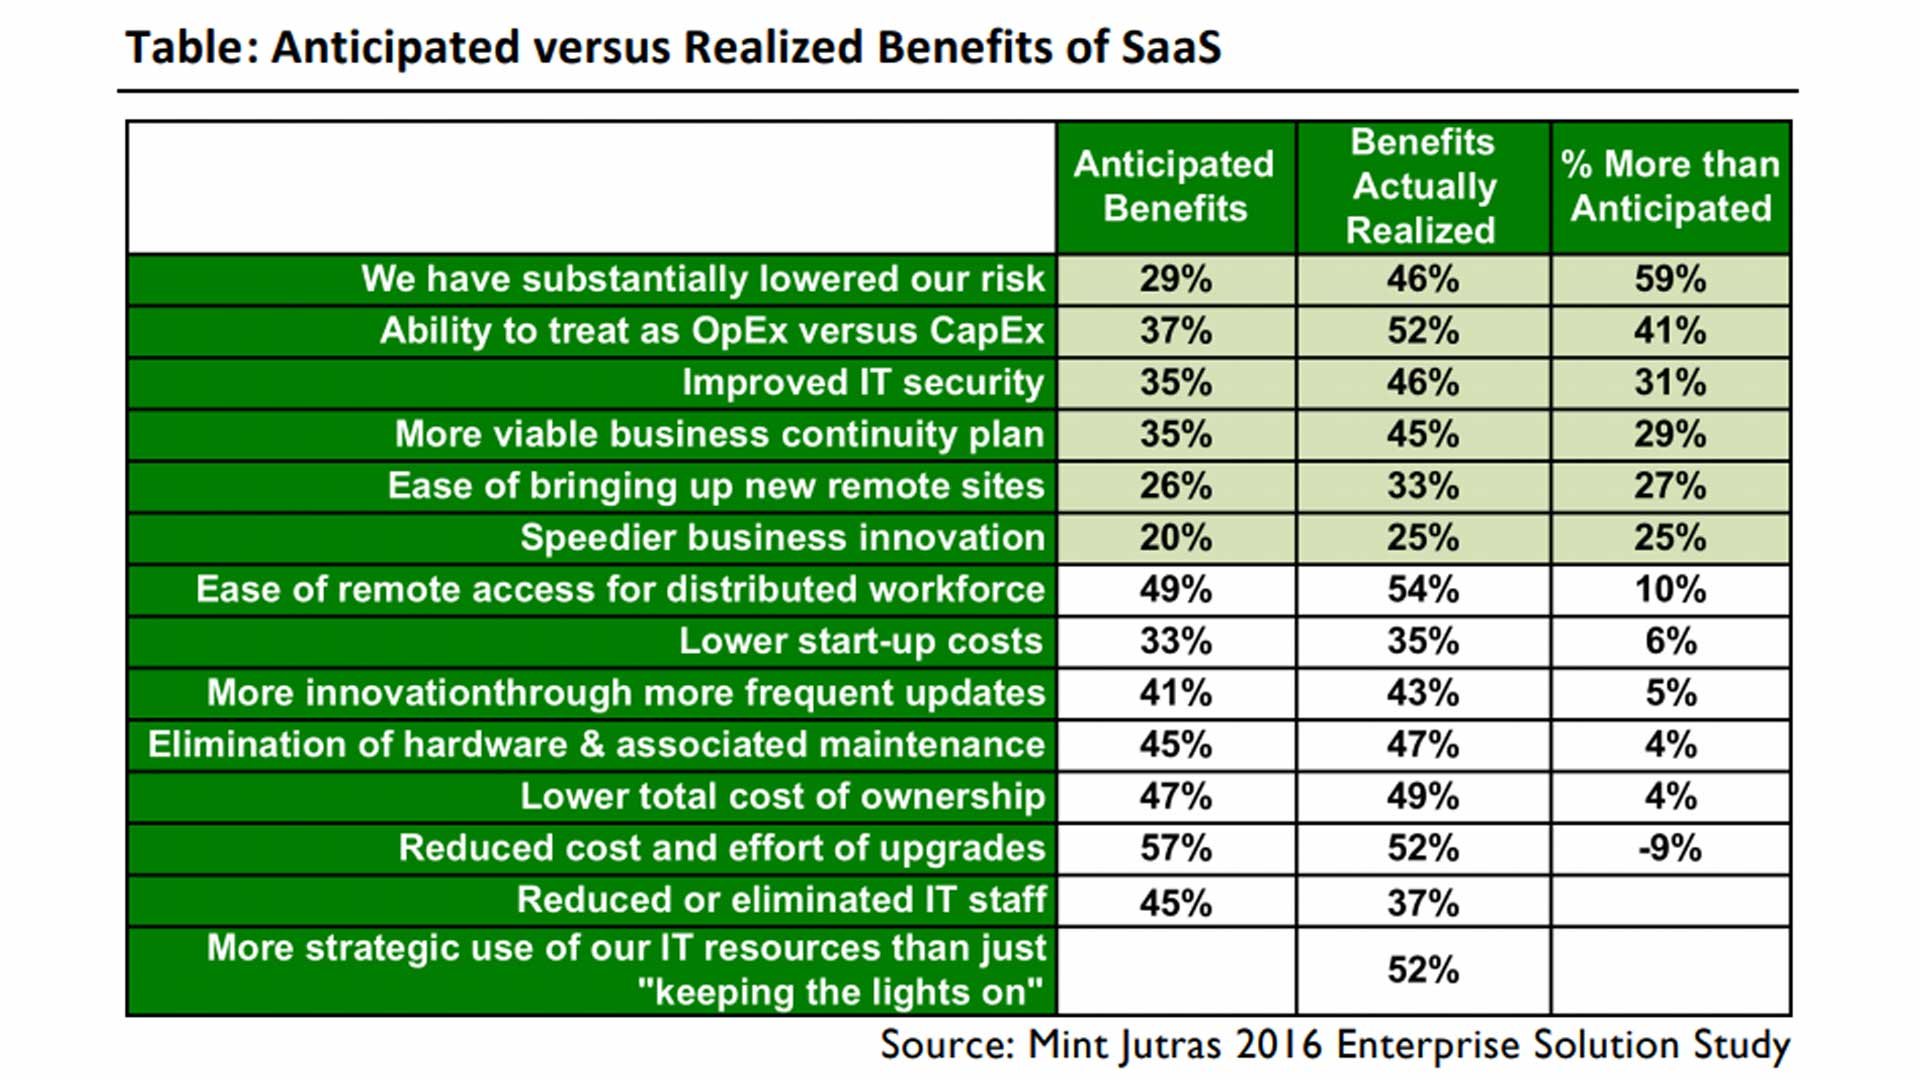 Table - Anticipated versus Realized Benefits of SaaS